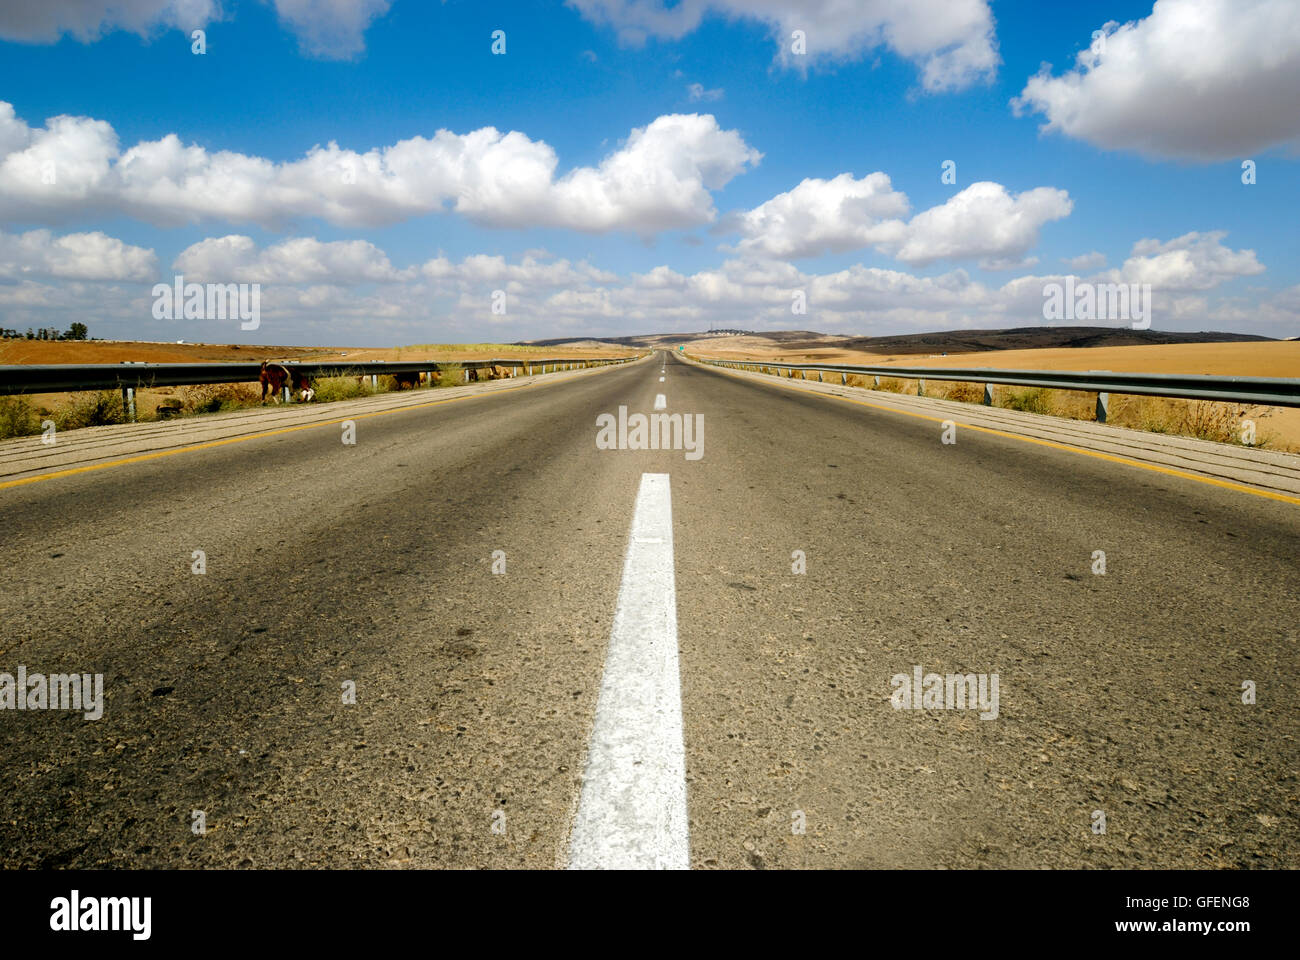 Australian, western New South Wales, Endless road to nowhere running into the horizon blue sky with clouds - Stock Image